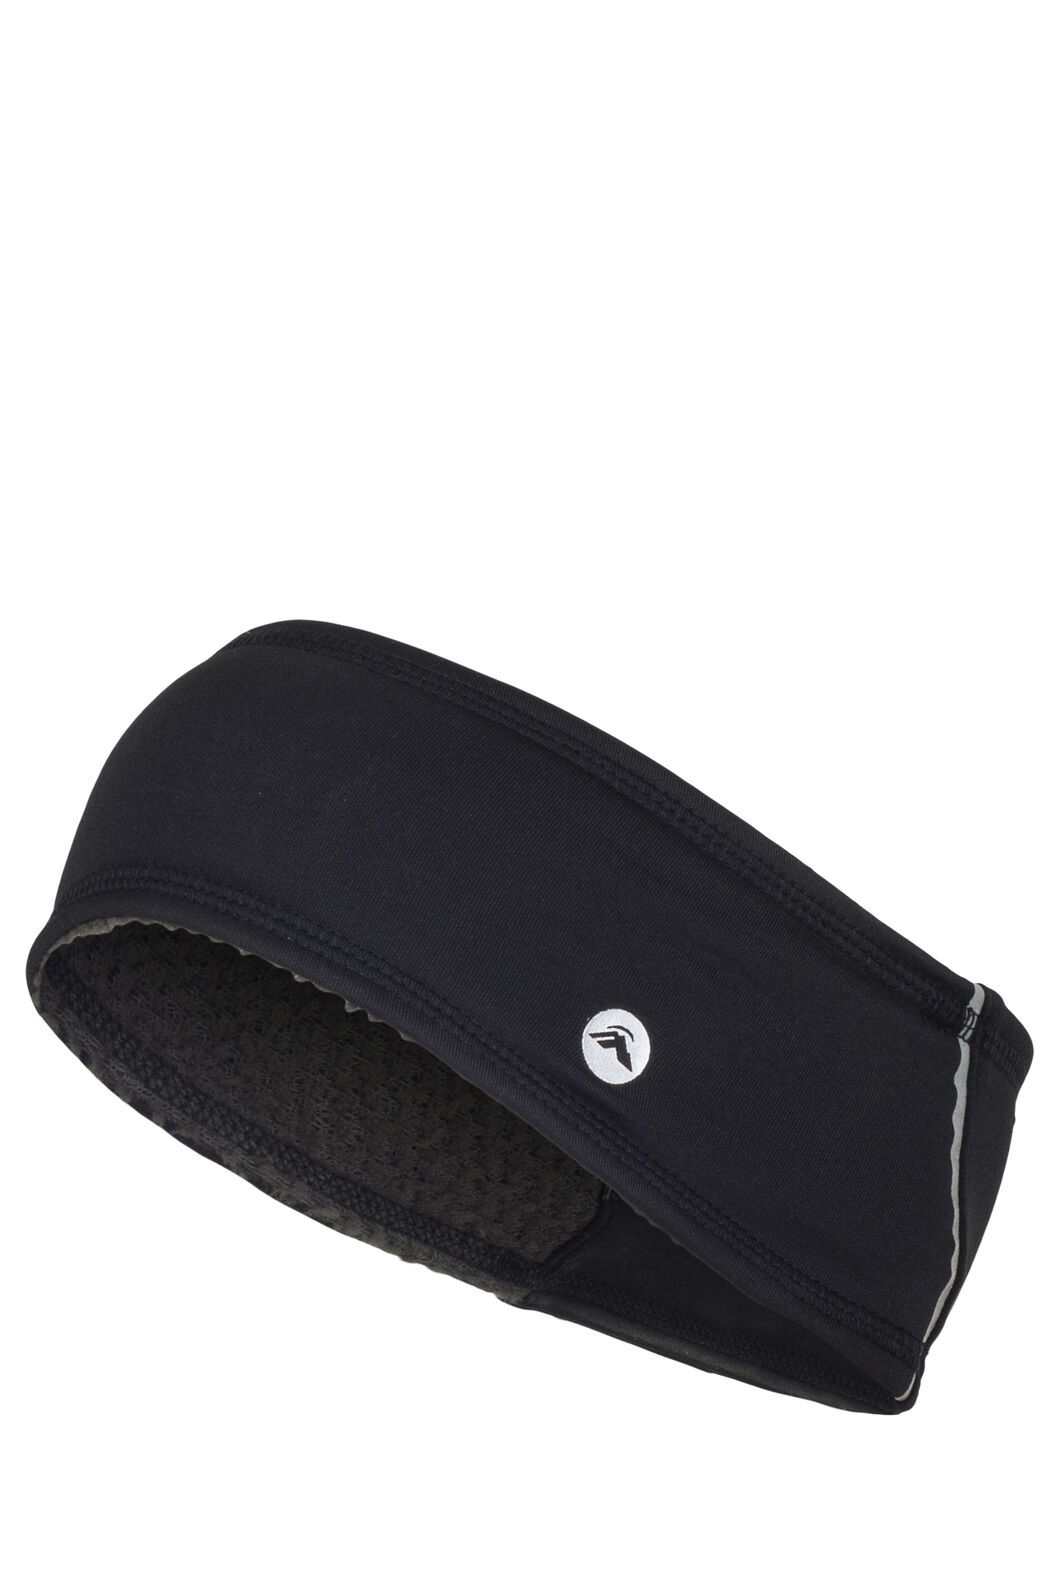 Macpac Alpha Headband, Black, hi-res